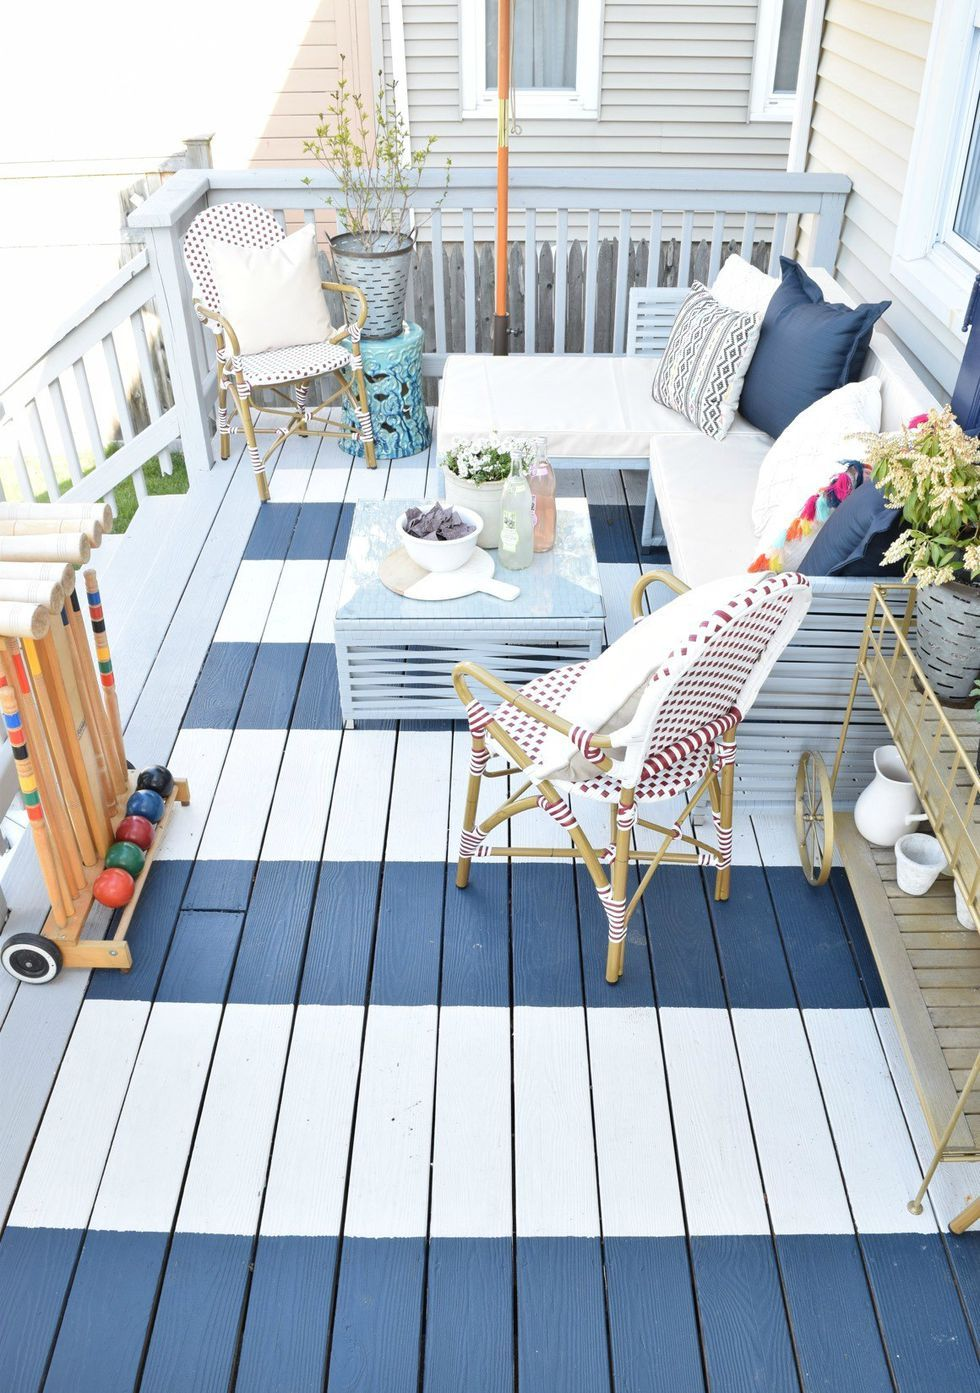 How to Turn Your Deck Into an Outdoor Paradise | Outdoor ...